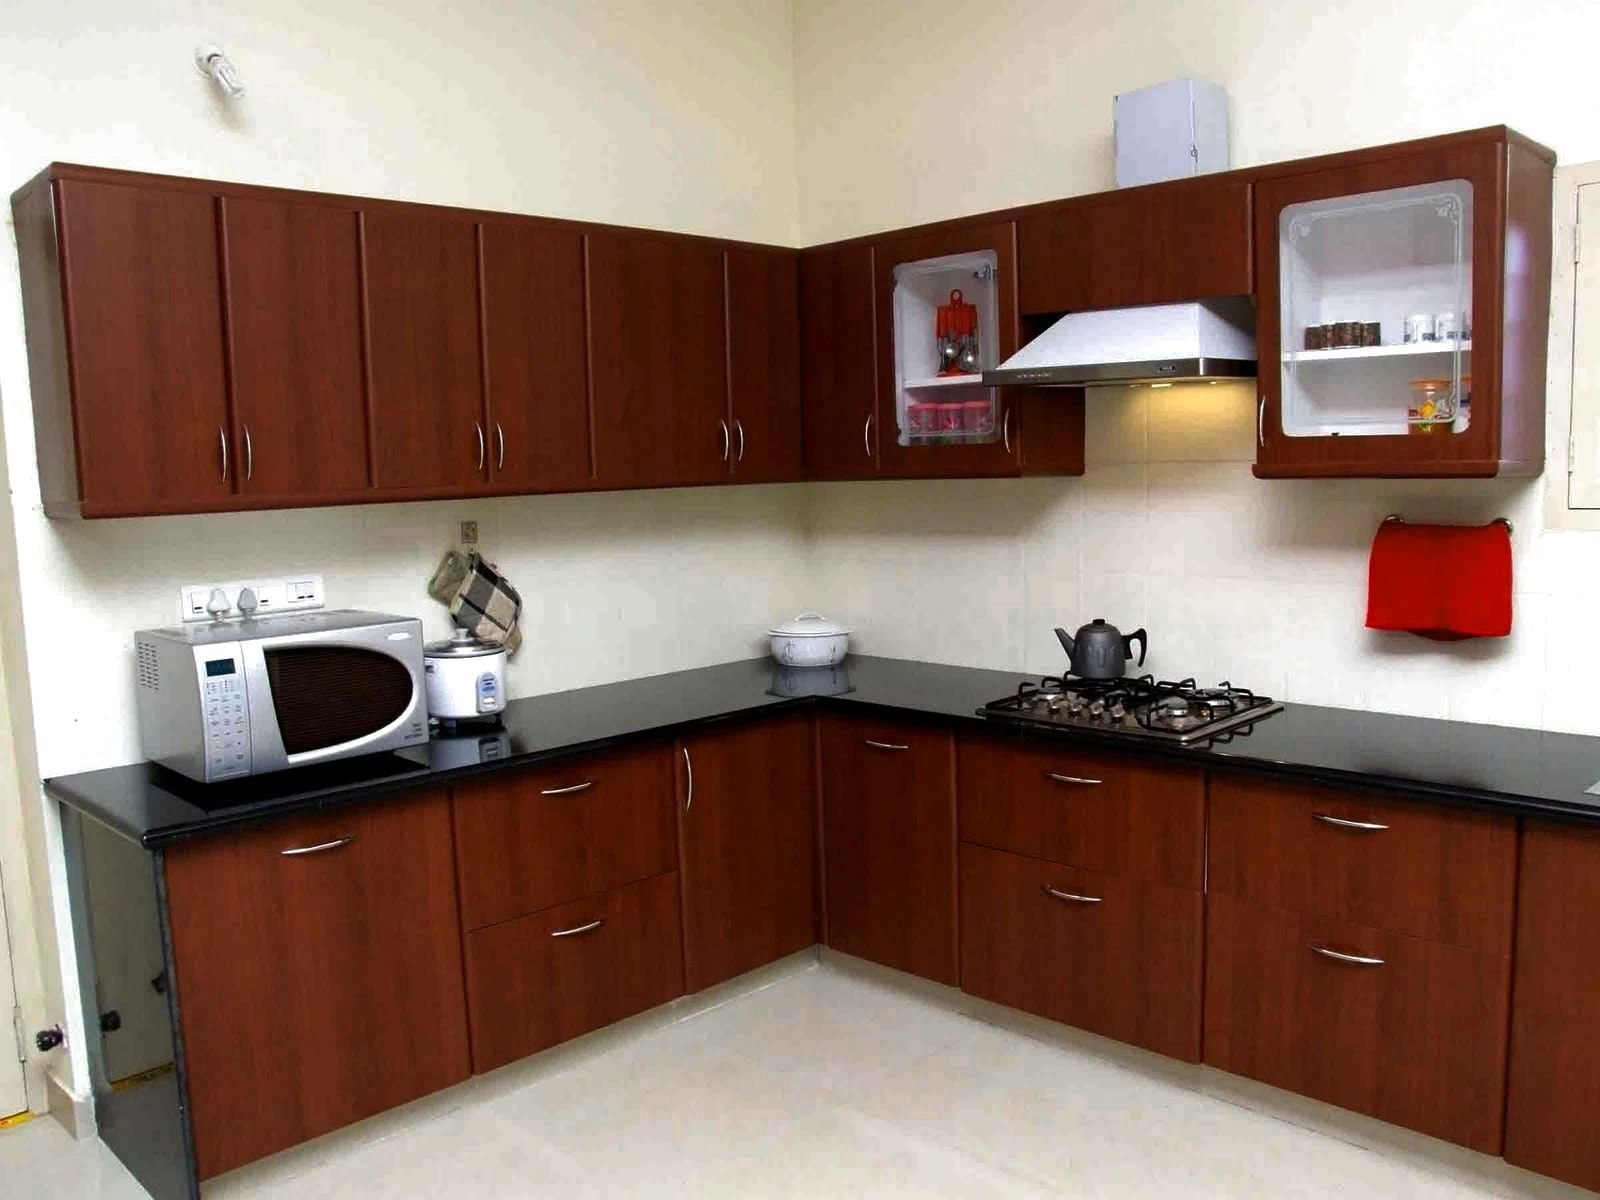 Kitchen Cabinet Designs In India Aid Paddle Attachment Modular Cabinets Design Seasons Home